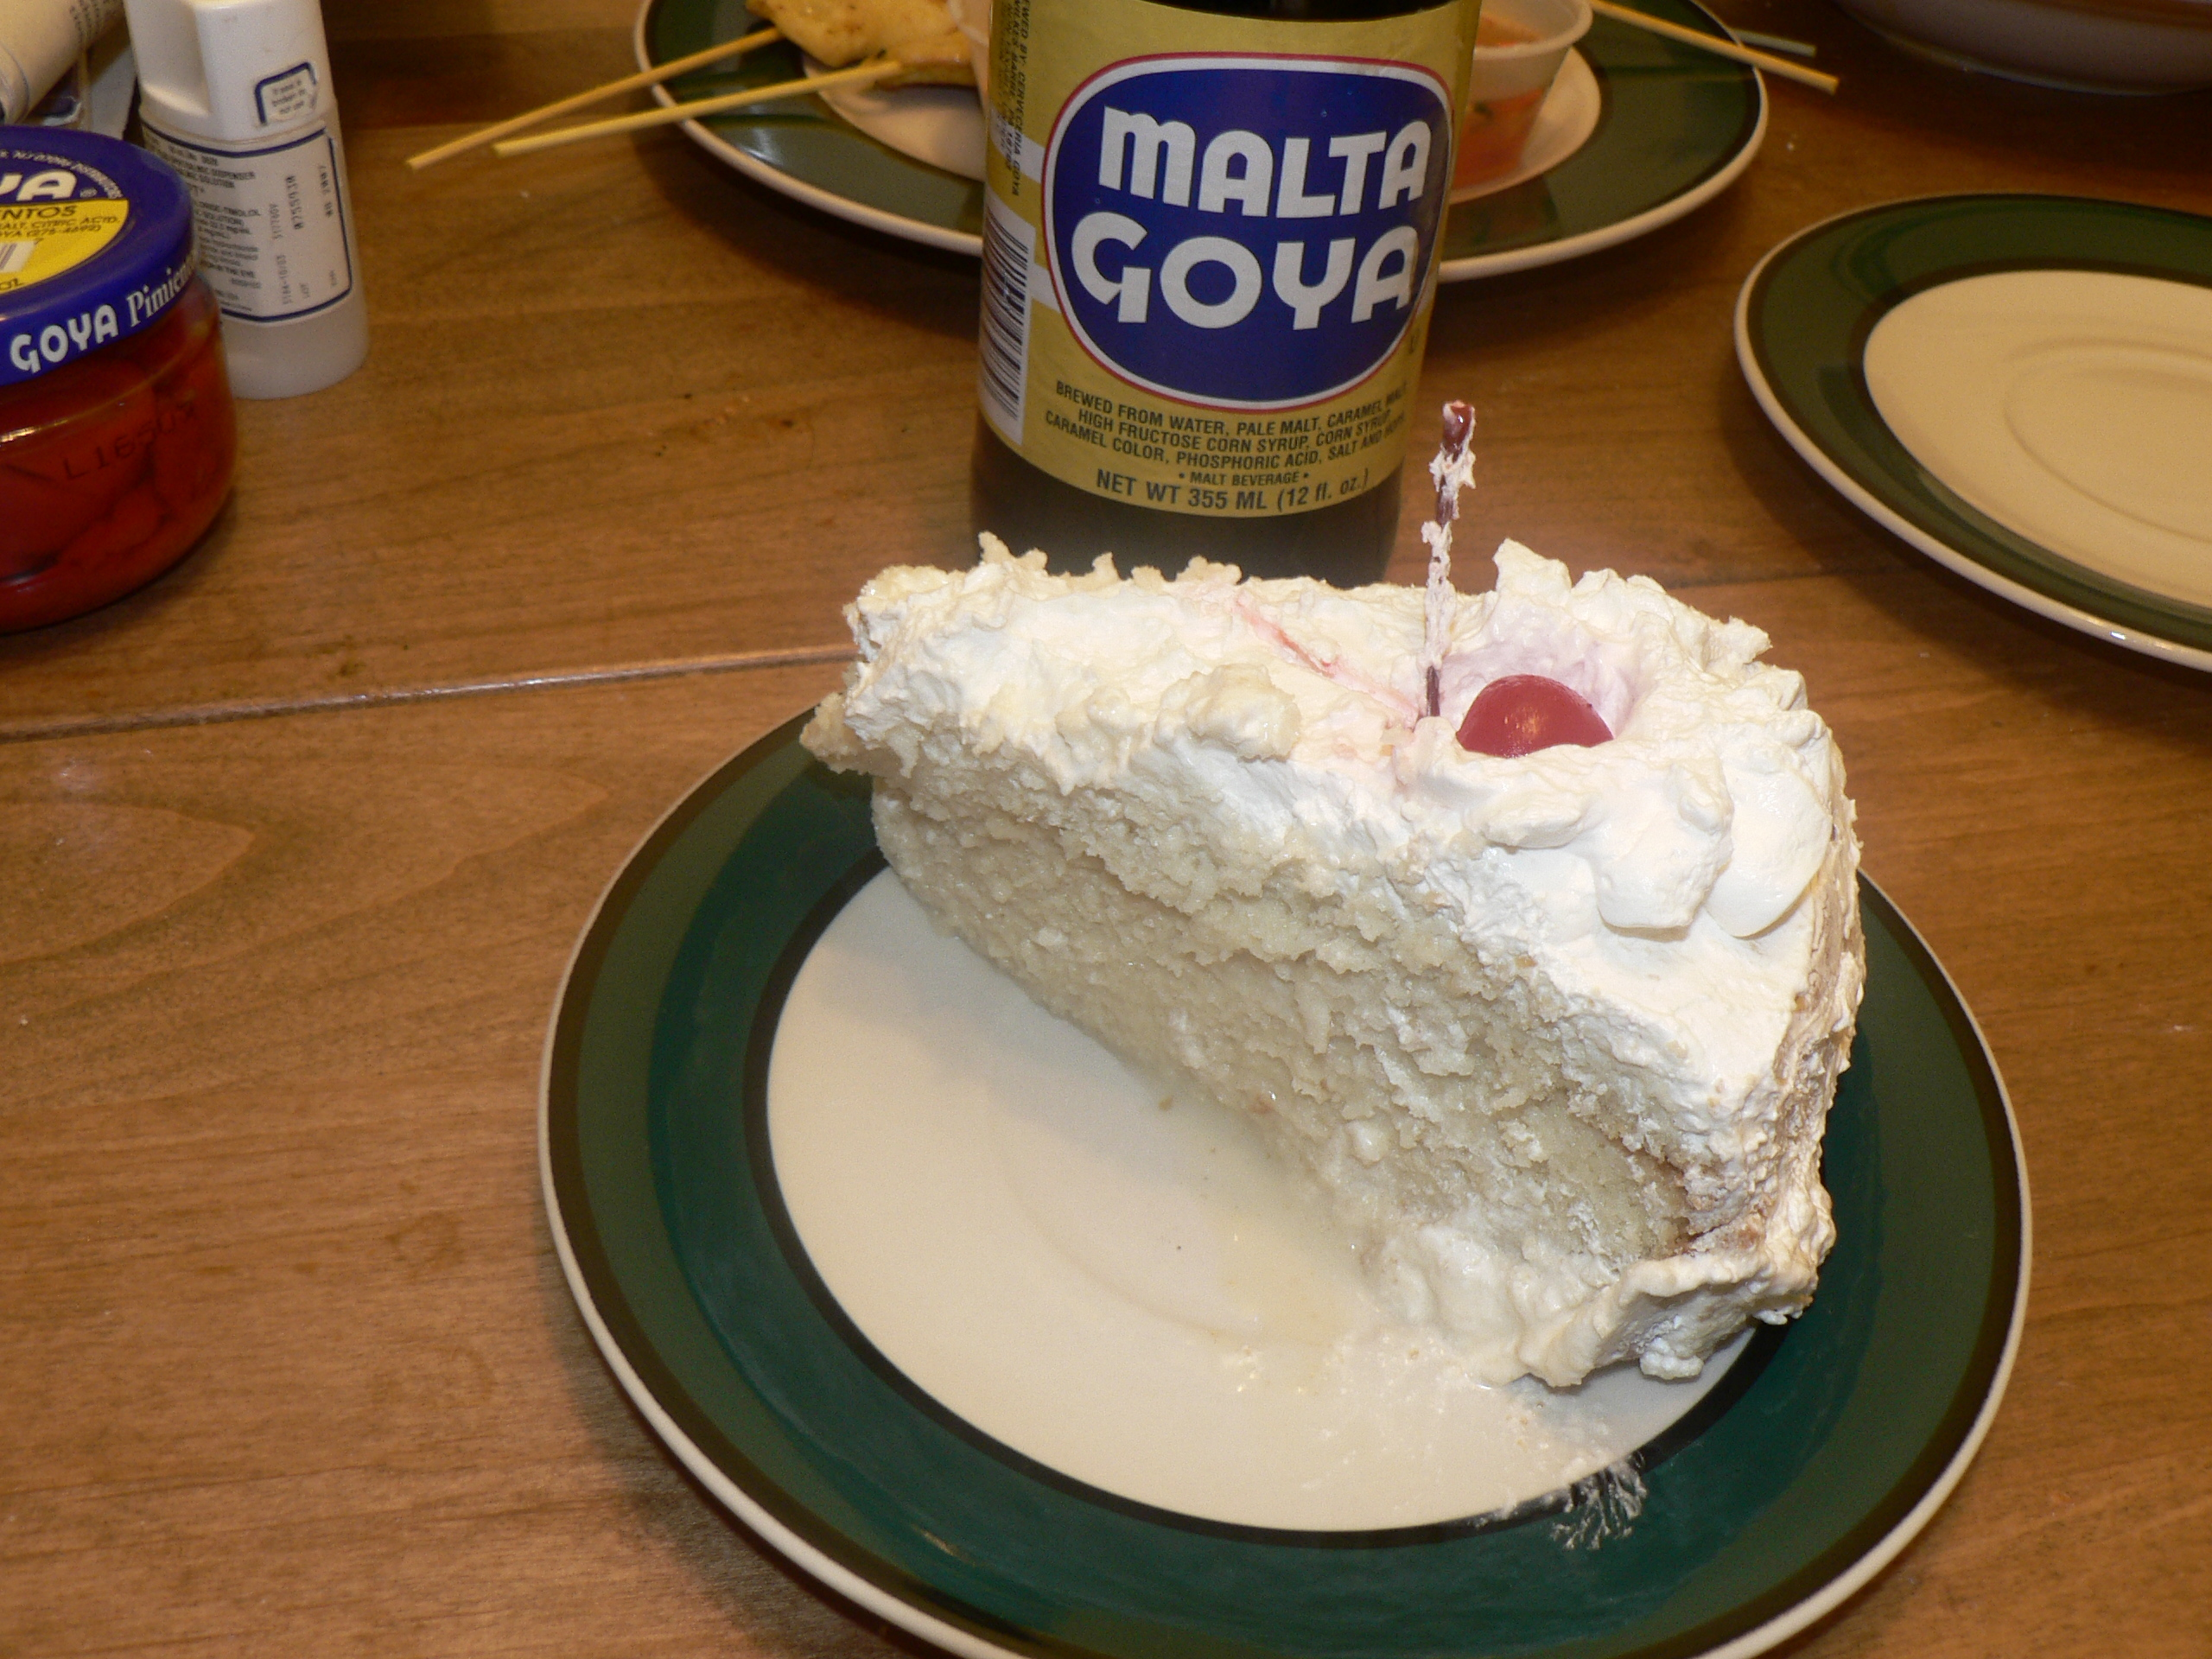 File:Tres leches cake.jpg - Wikimedia Commons